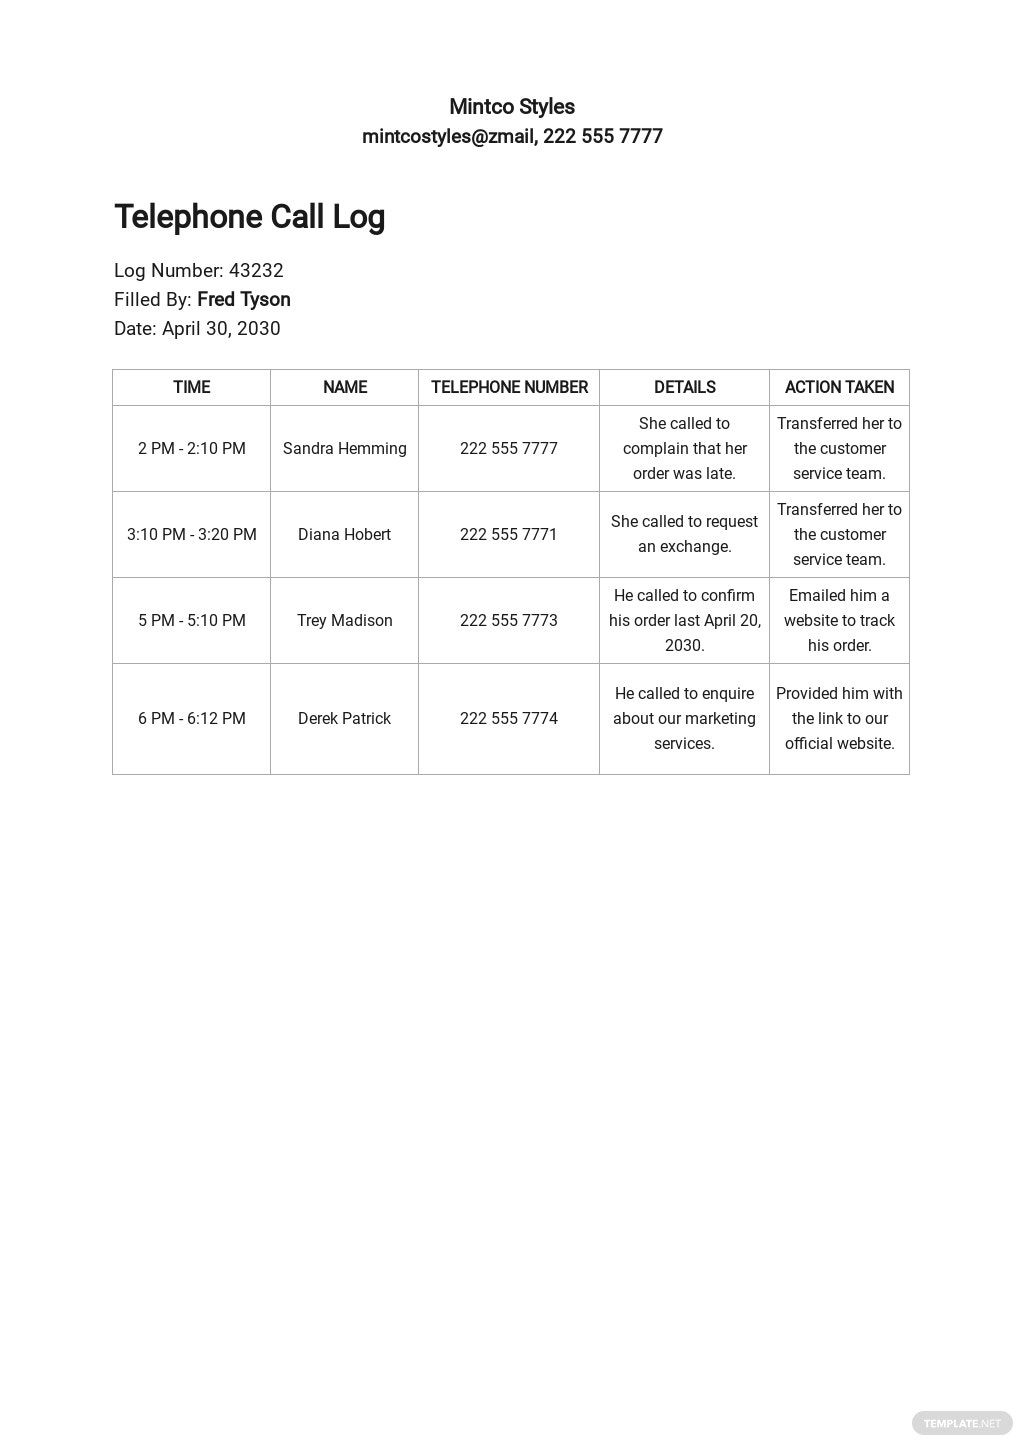 Telephone Call Log Template